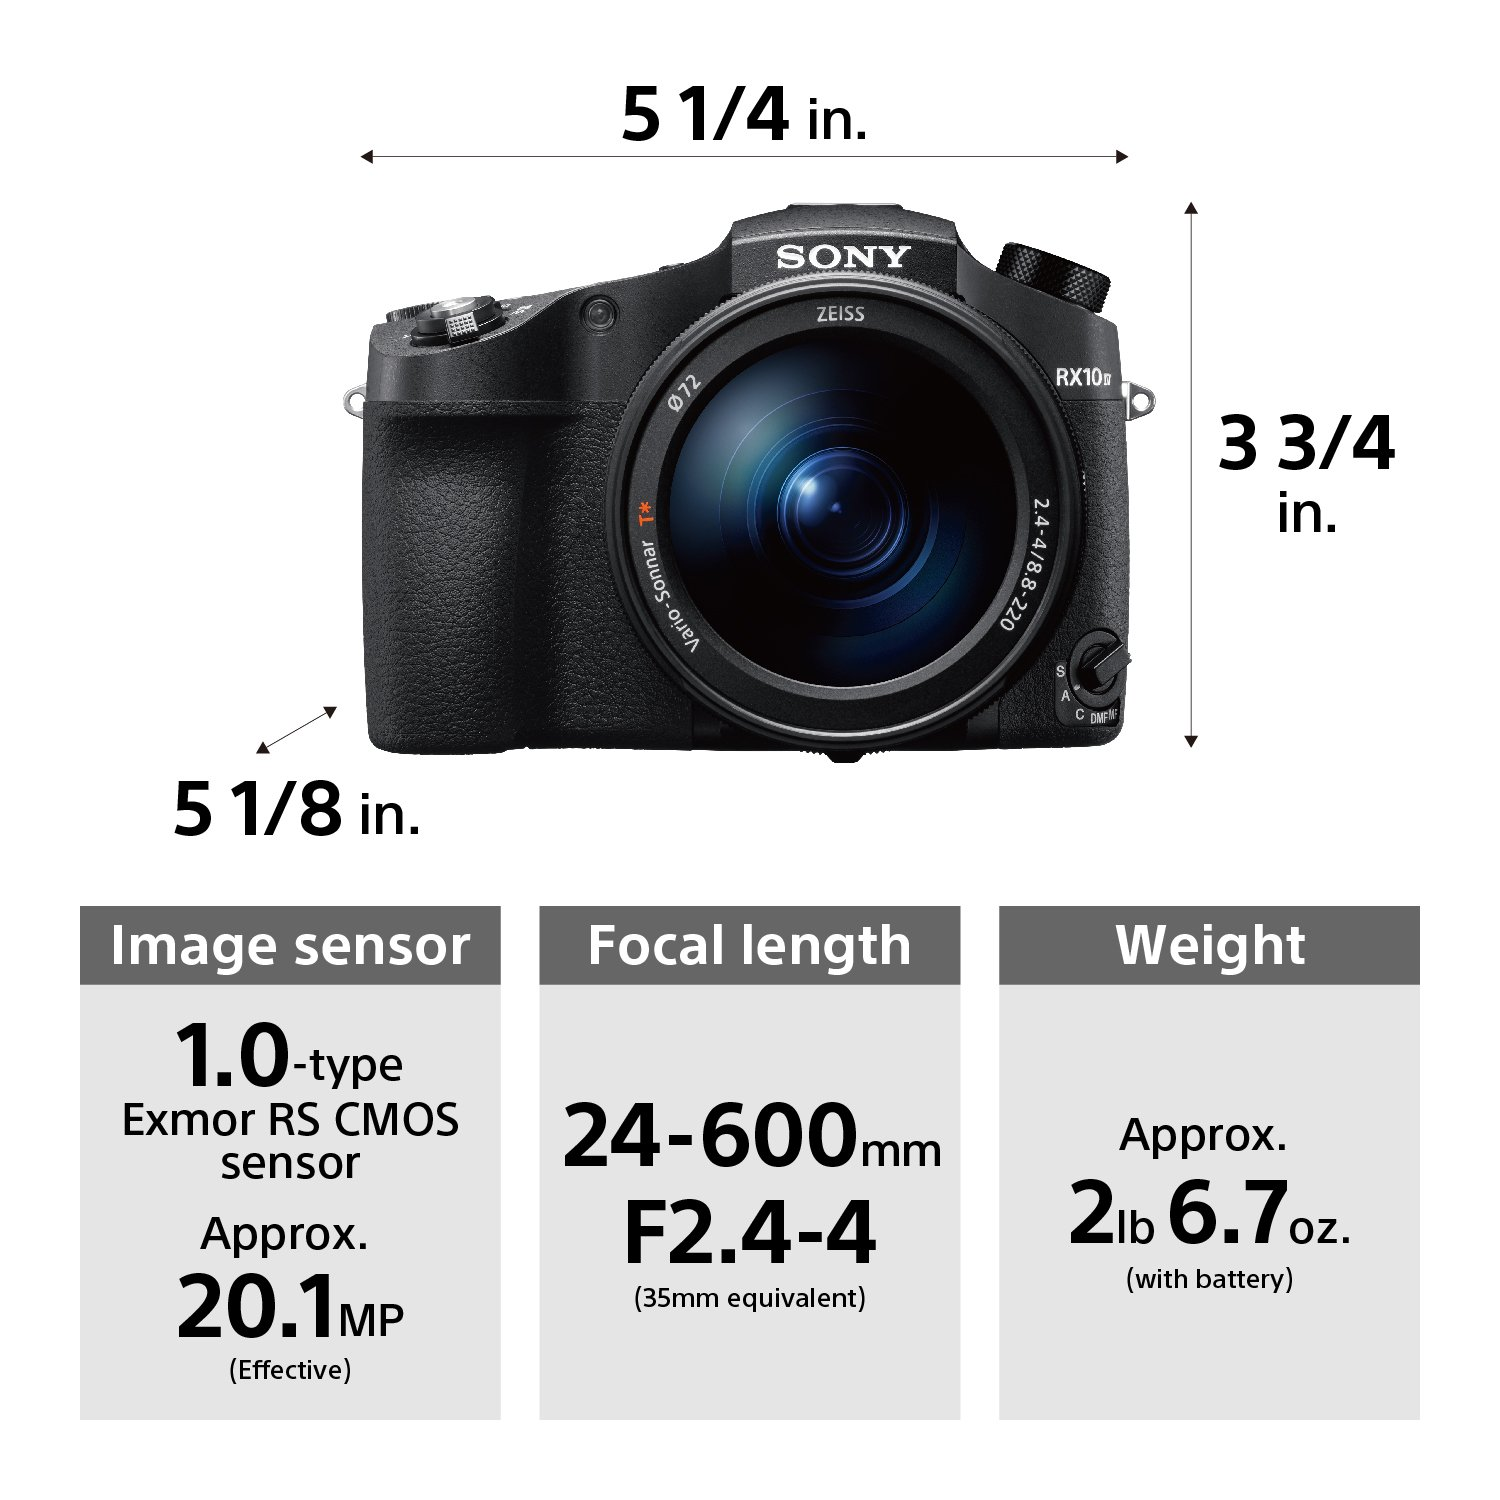 Best Dslr Camera Deals 2019 For Experts - Ayaz Hashmi Official. All These Cameras are for Experts who do a Quality Based Photography. dslr camera,  best dslr camera, photography dslr camera, canon dslr camera, nikon dslr camera, best dslr camera ayaz, ayaz camera